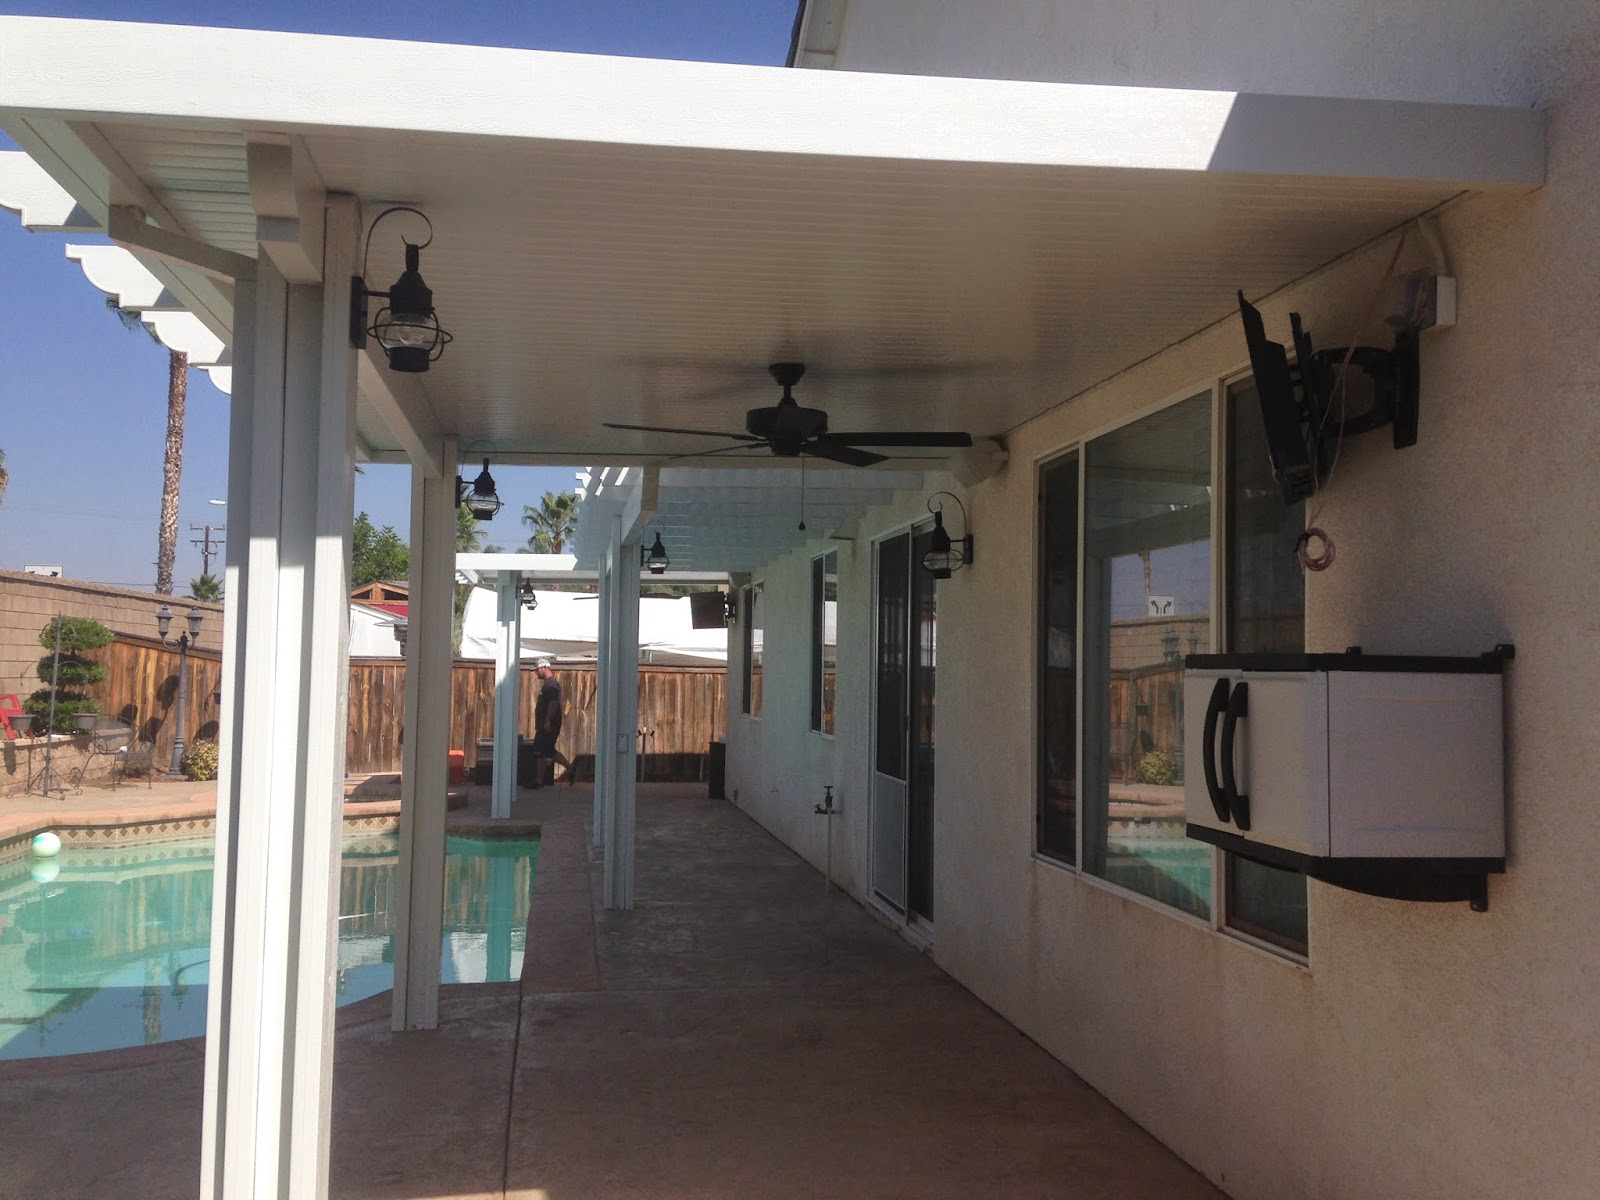 Alumawoodproducts september 2014 this patio also has 6 post lights 2 fans and 2 tvs with outlets this patio just made this backyard into a paradise workwithnaturefo